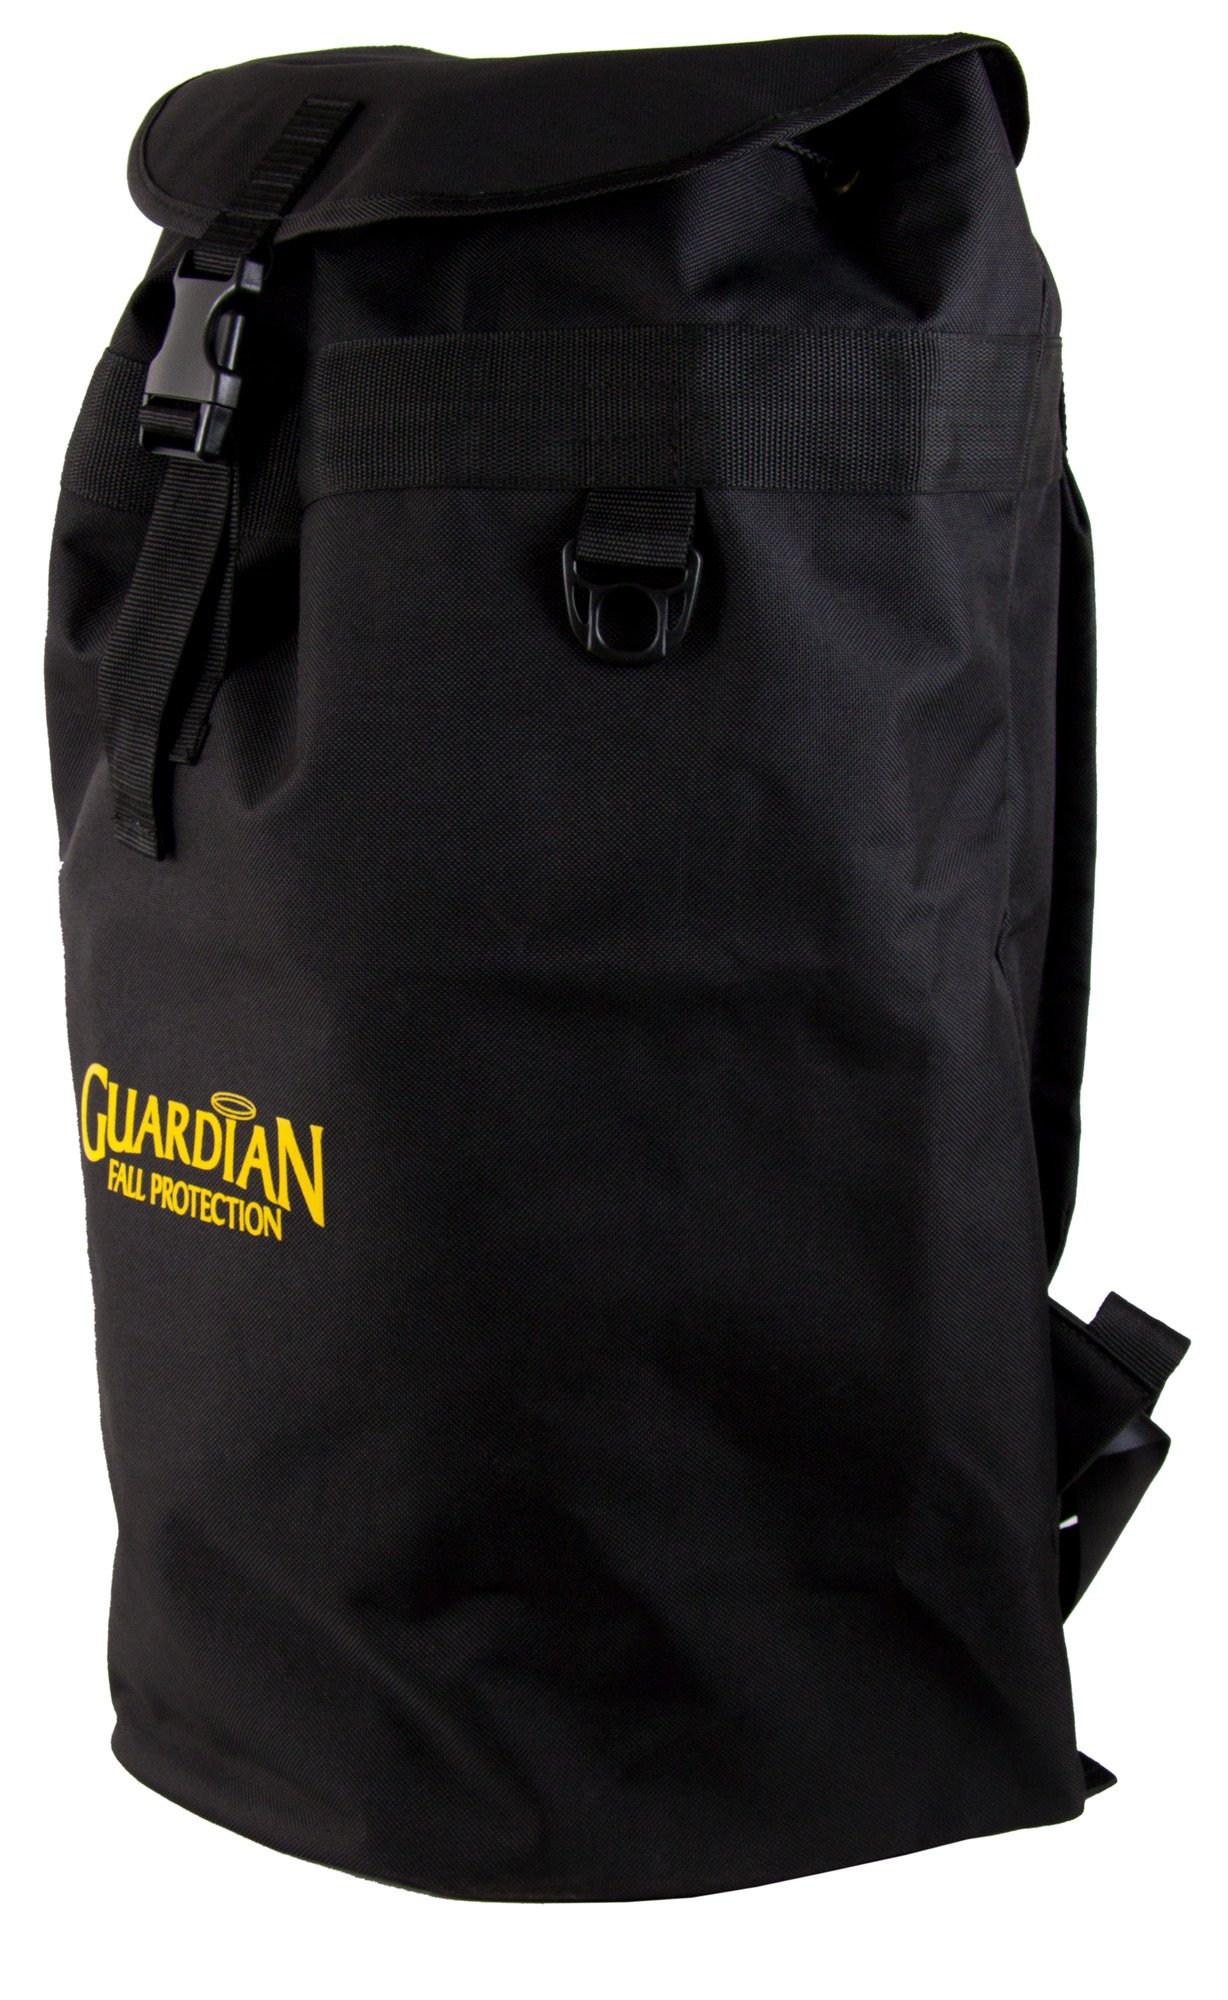 Guardian Fall Protection 00763 Ultra Sack Large Black Canvas Duffel Back Pack by Guardian Fall Protection